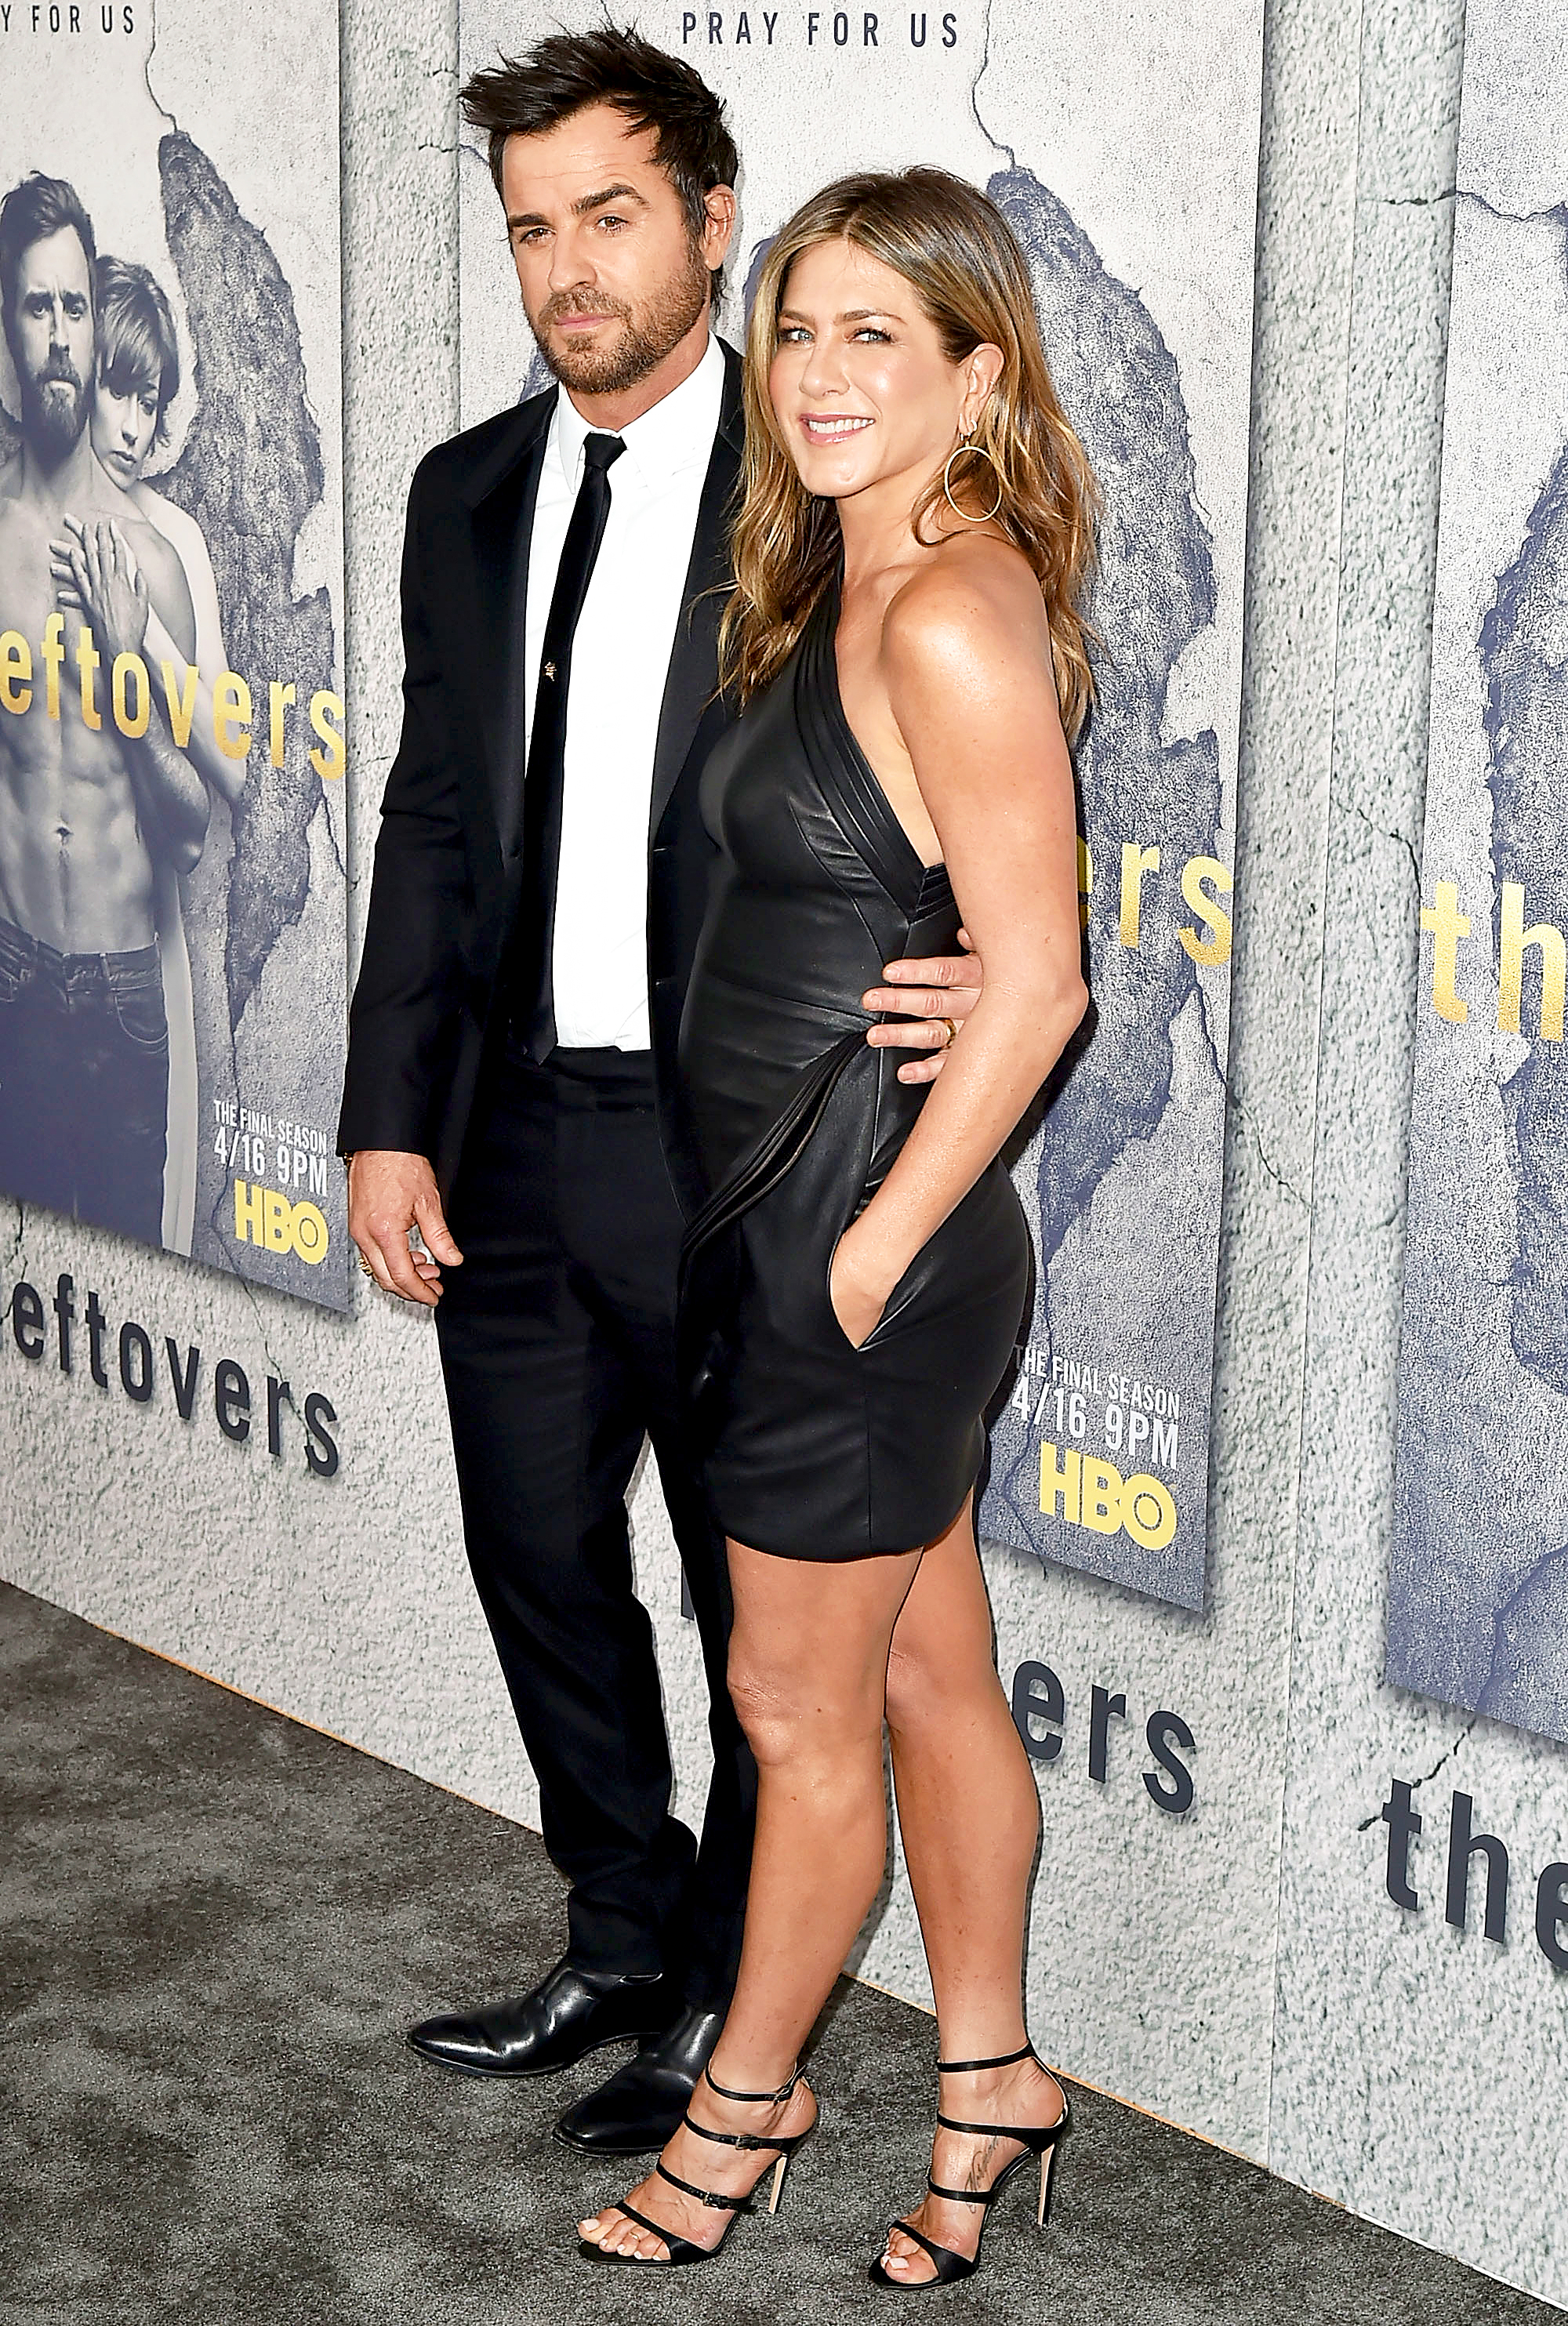 Jen Aniston Justin Theroux Look Happier Than Ever At